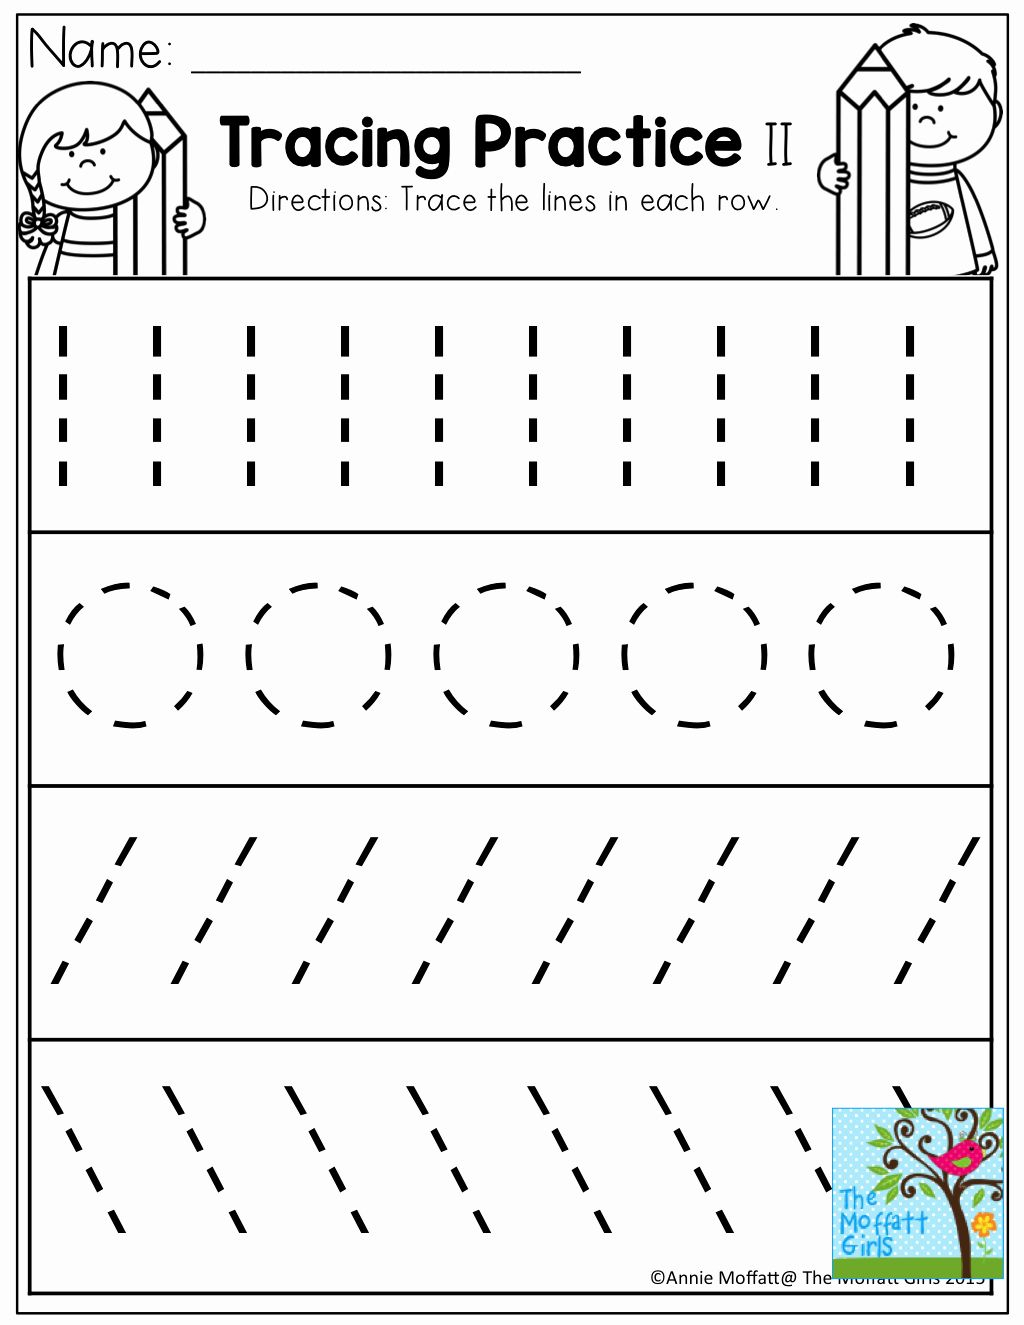 Worksheets For 3 Year Olds for 3 Year Old Alphabet Worksheets